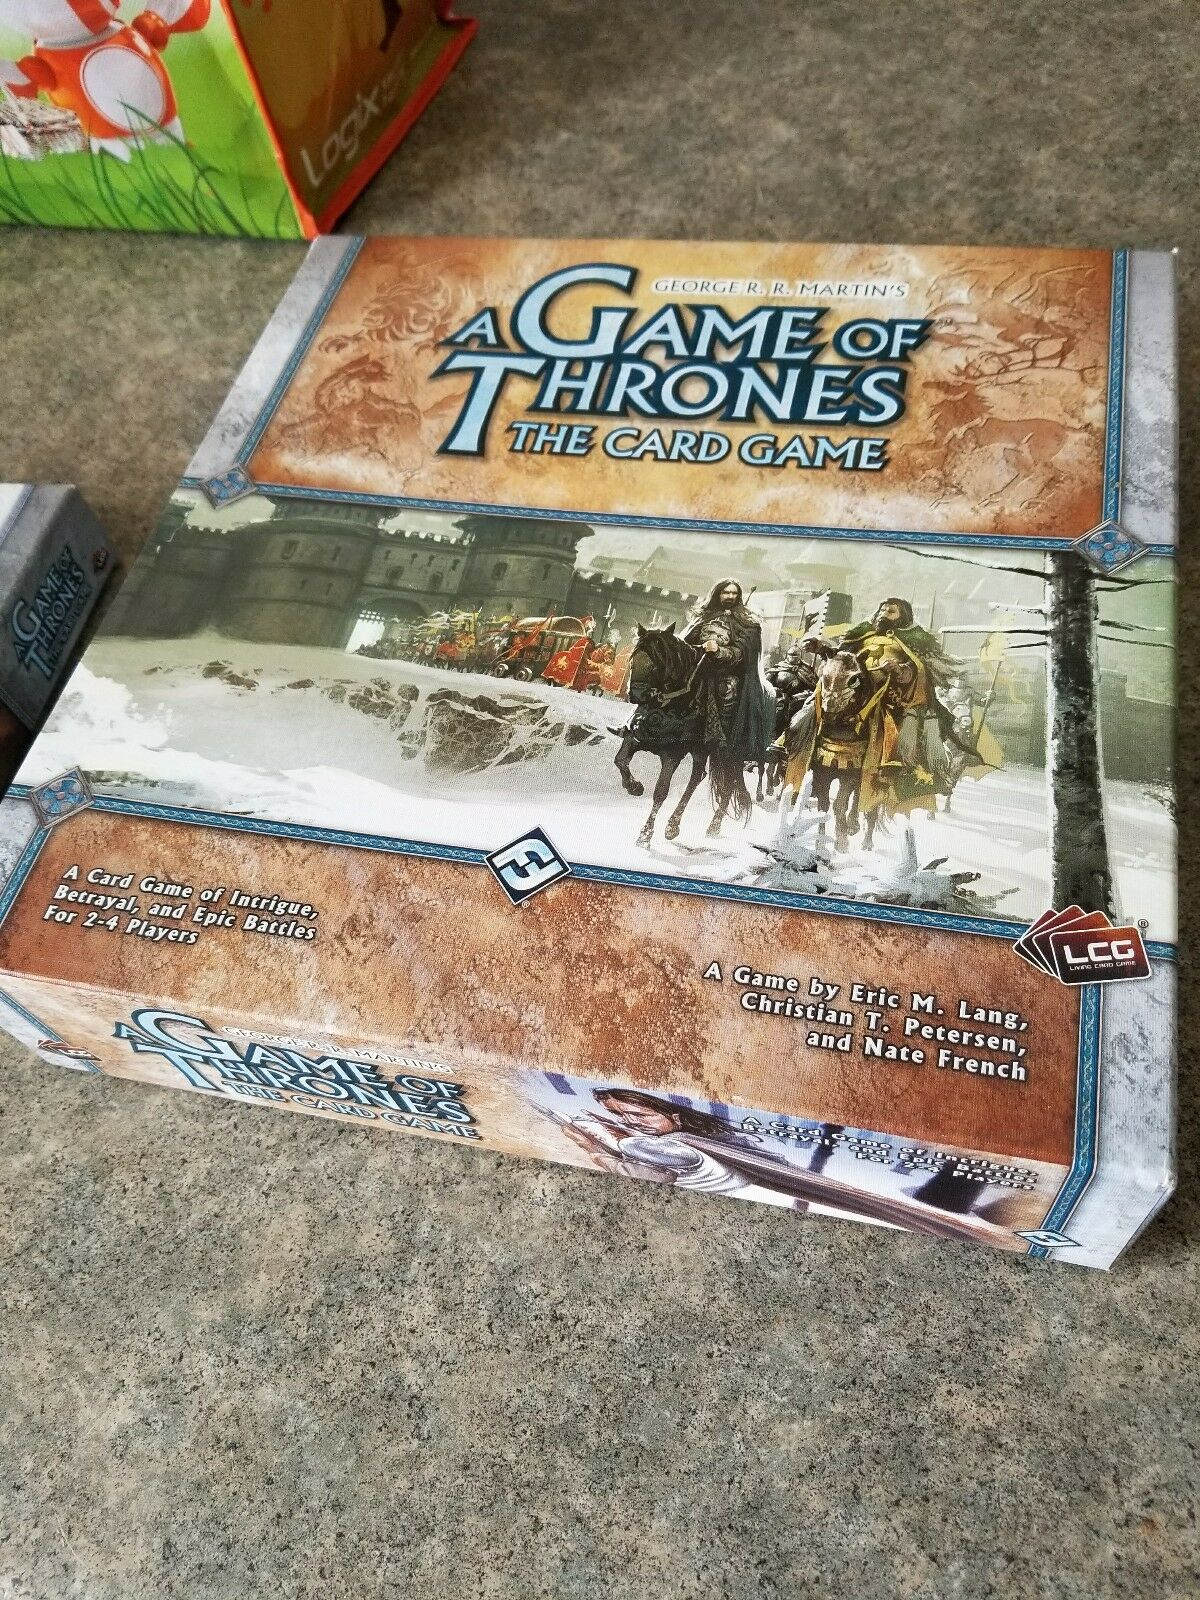 Menge a game of thrones das kartenspiel erstausgabe fantasy flight games